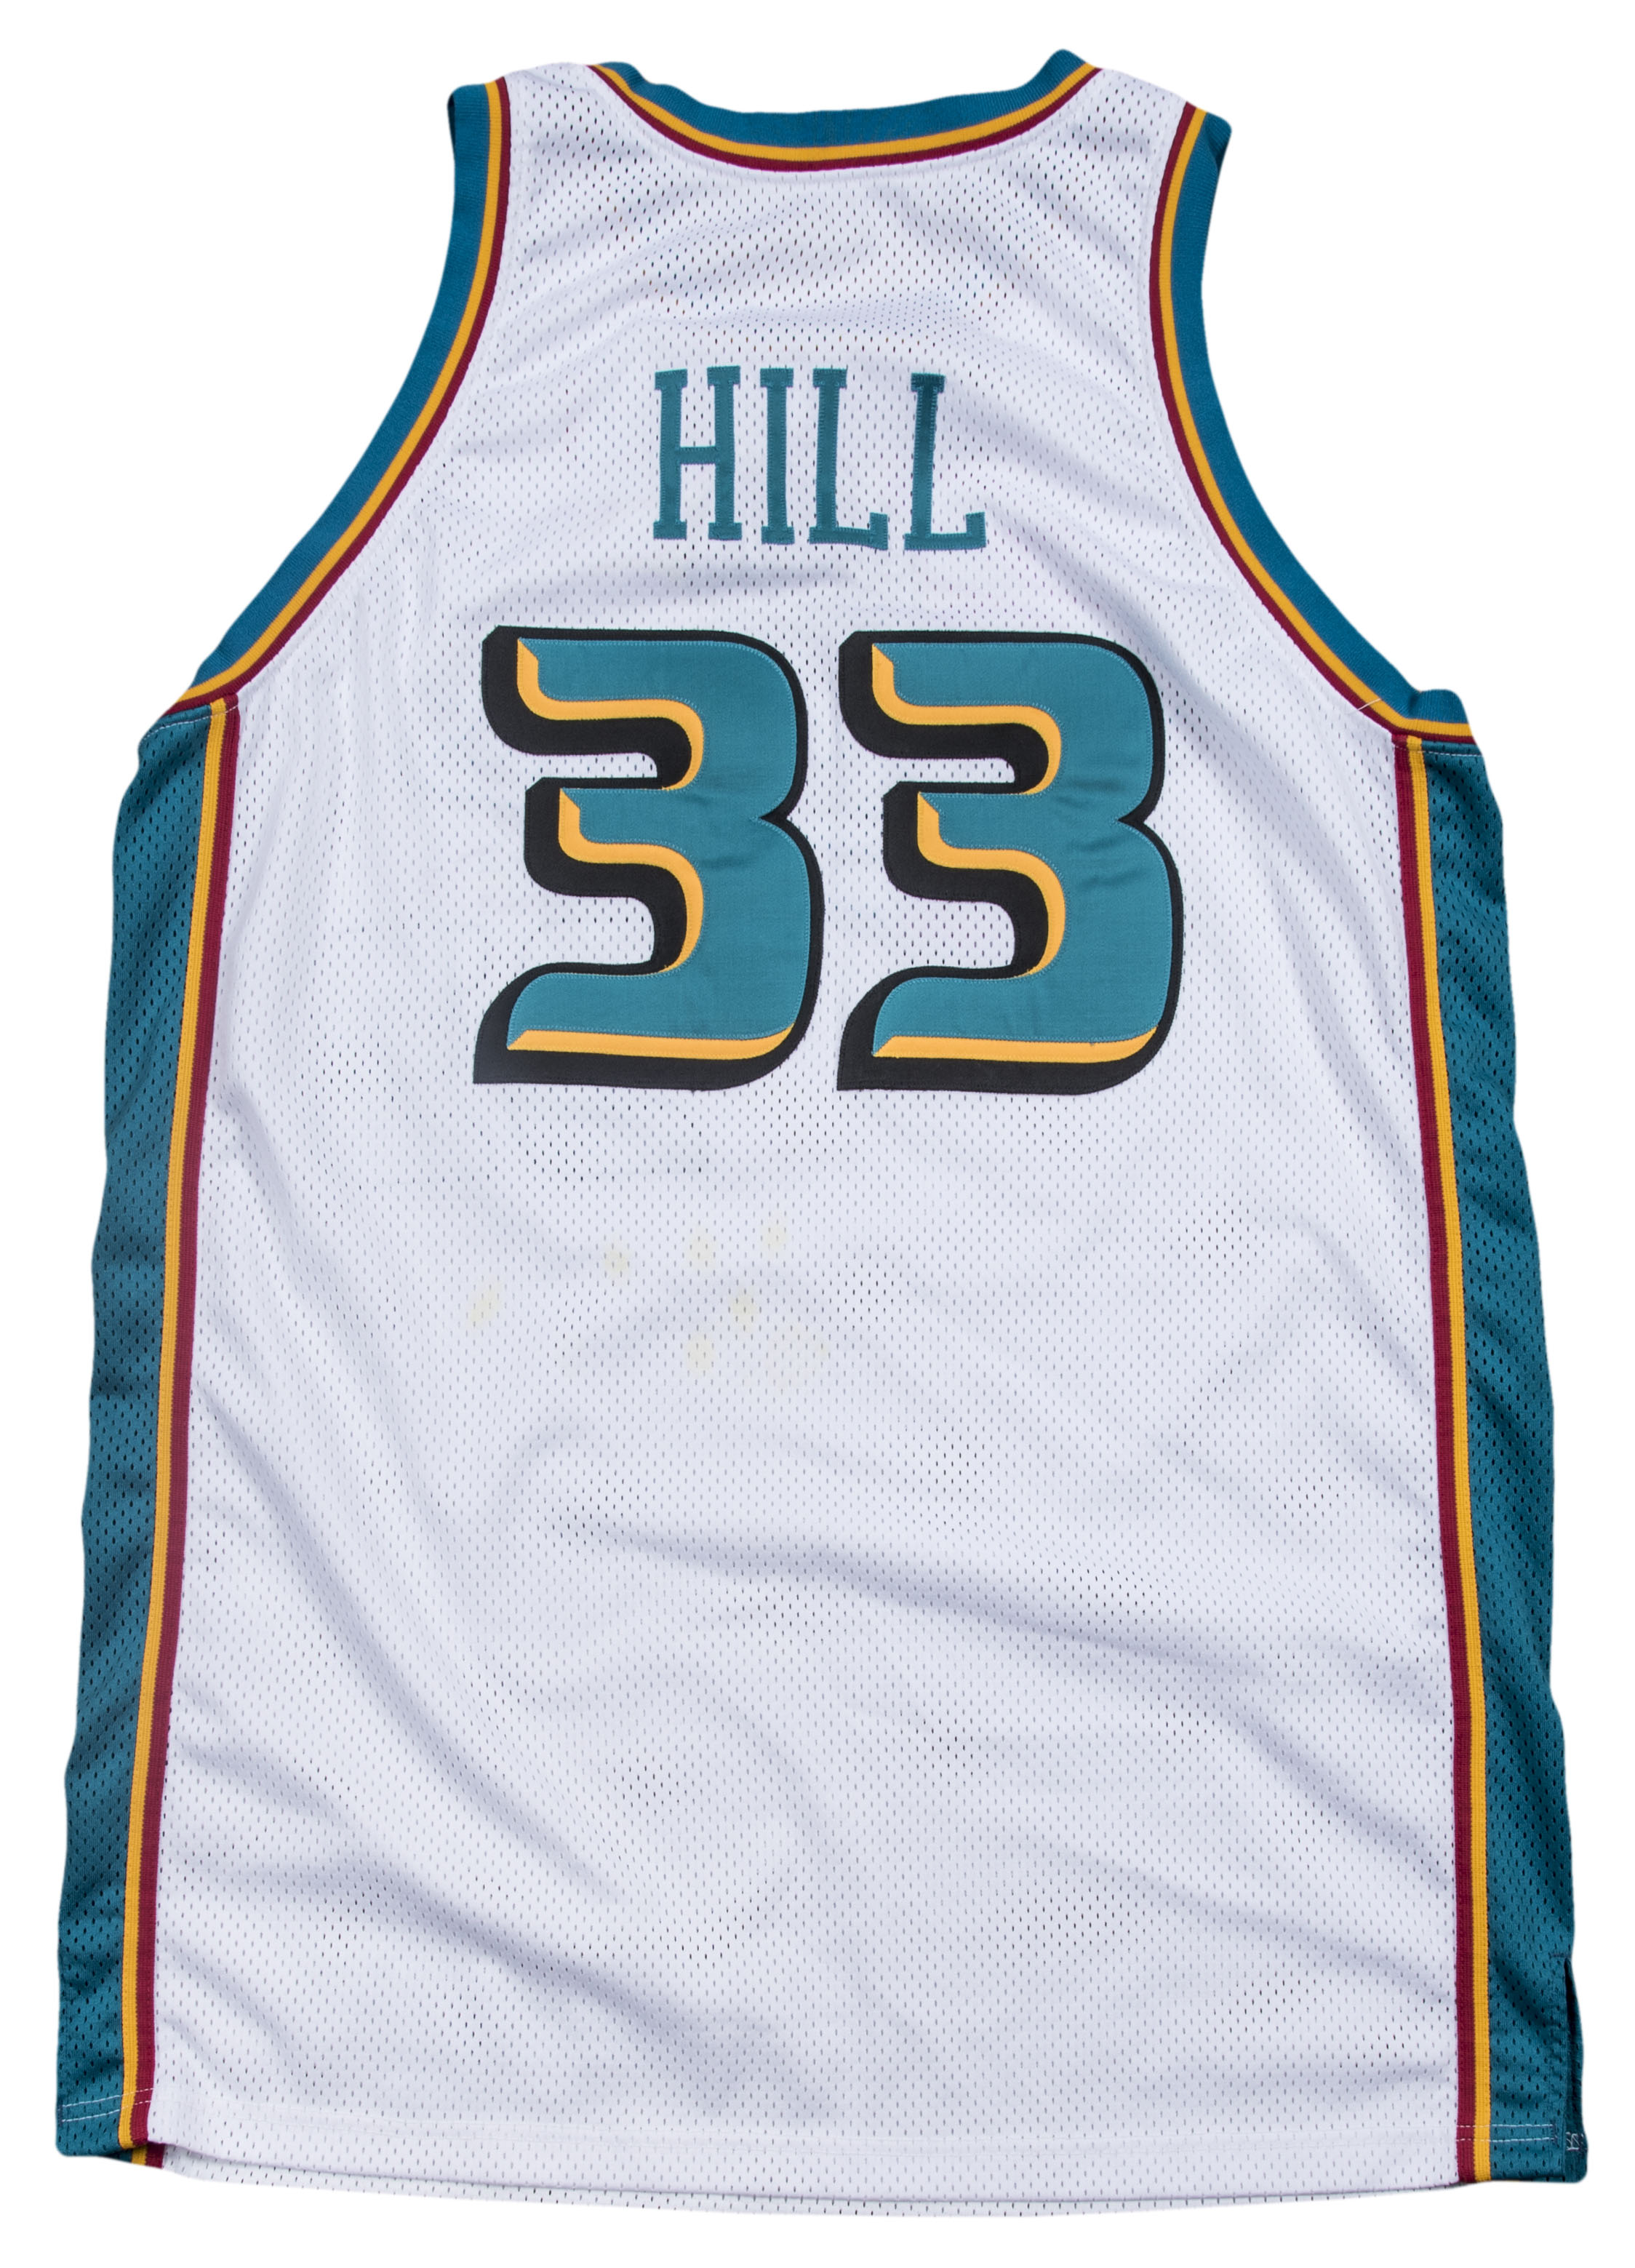 a7a6284bfee 1999-2000 Grant Hill Game Used Detroit Pistons Home Jersey (Pistons  Employee LOA)